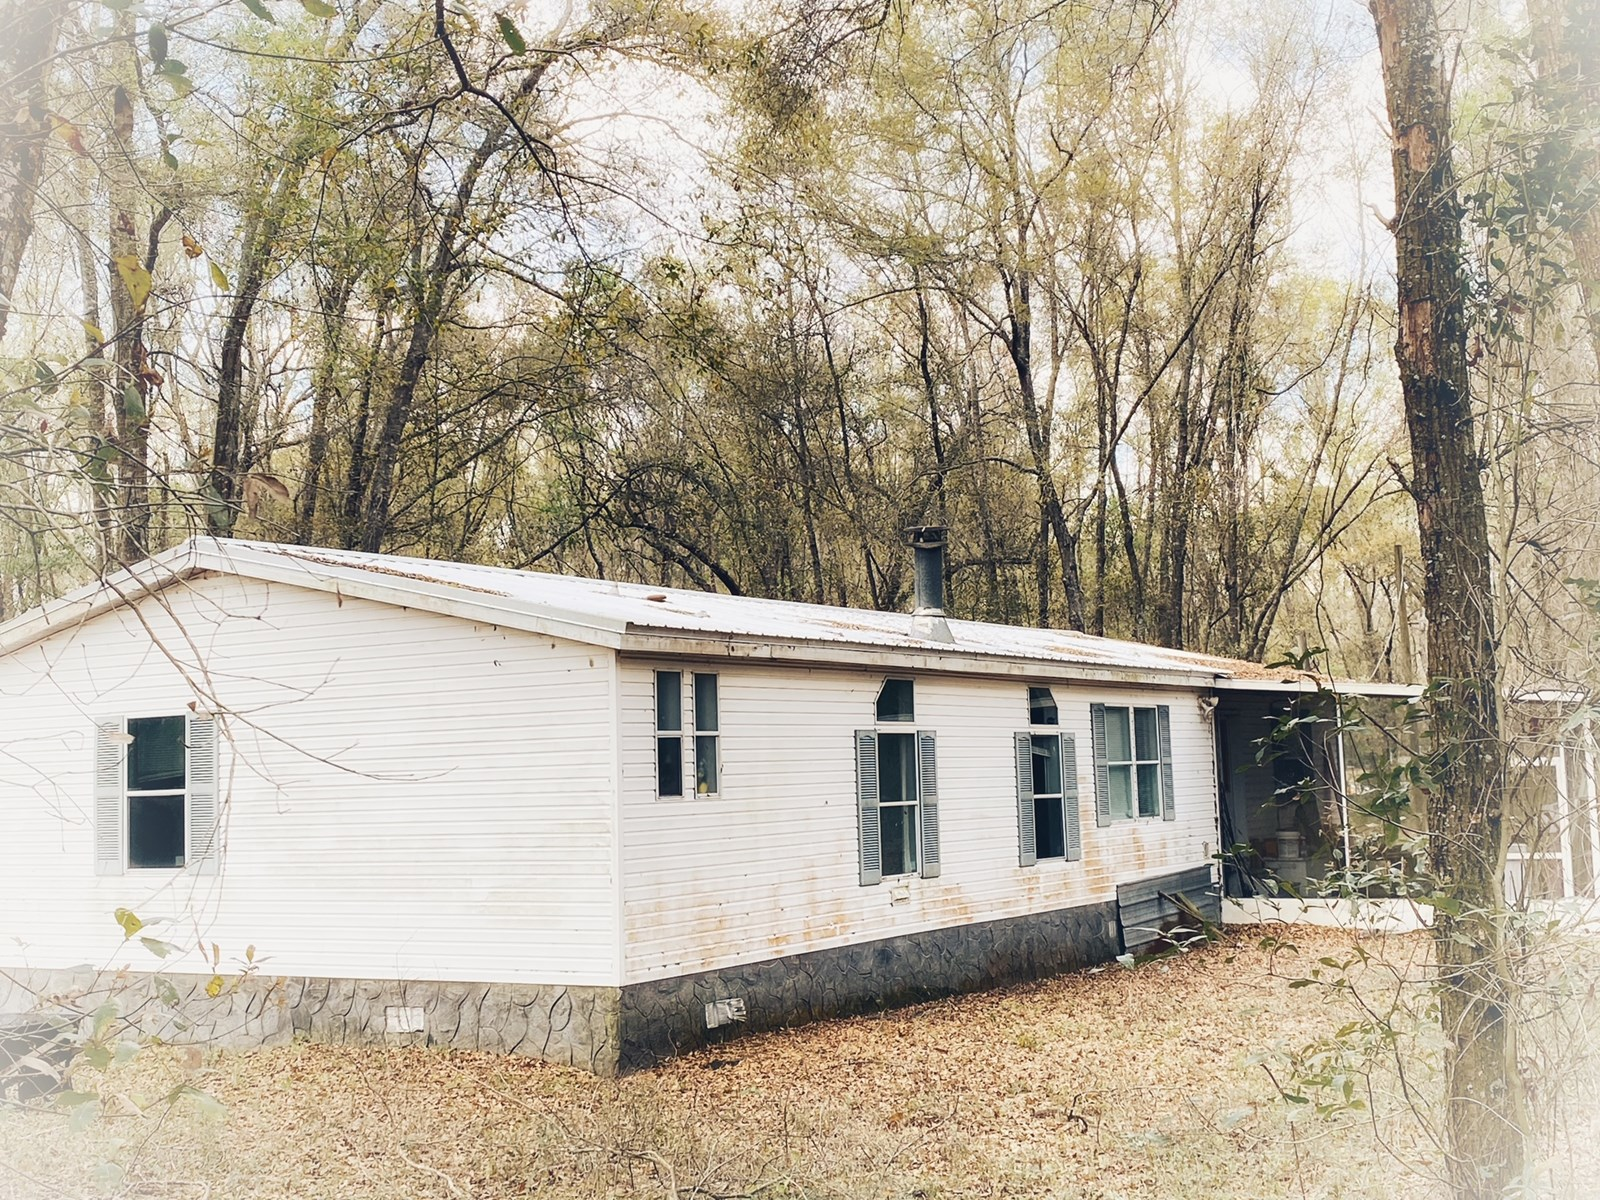 HUGE DOUBLE WIDE MOBILE HOME ON 11.74 ACRES FOR ONLY $99,999